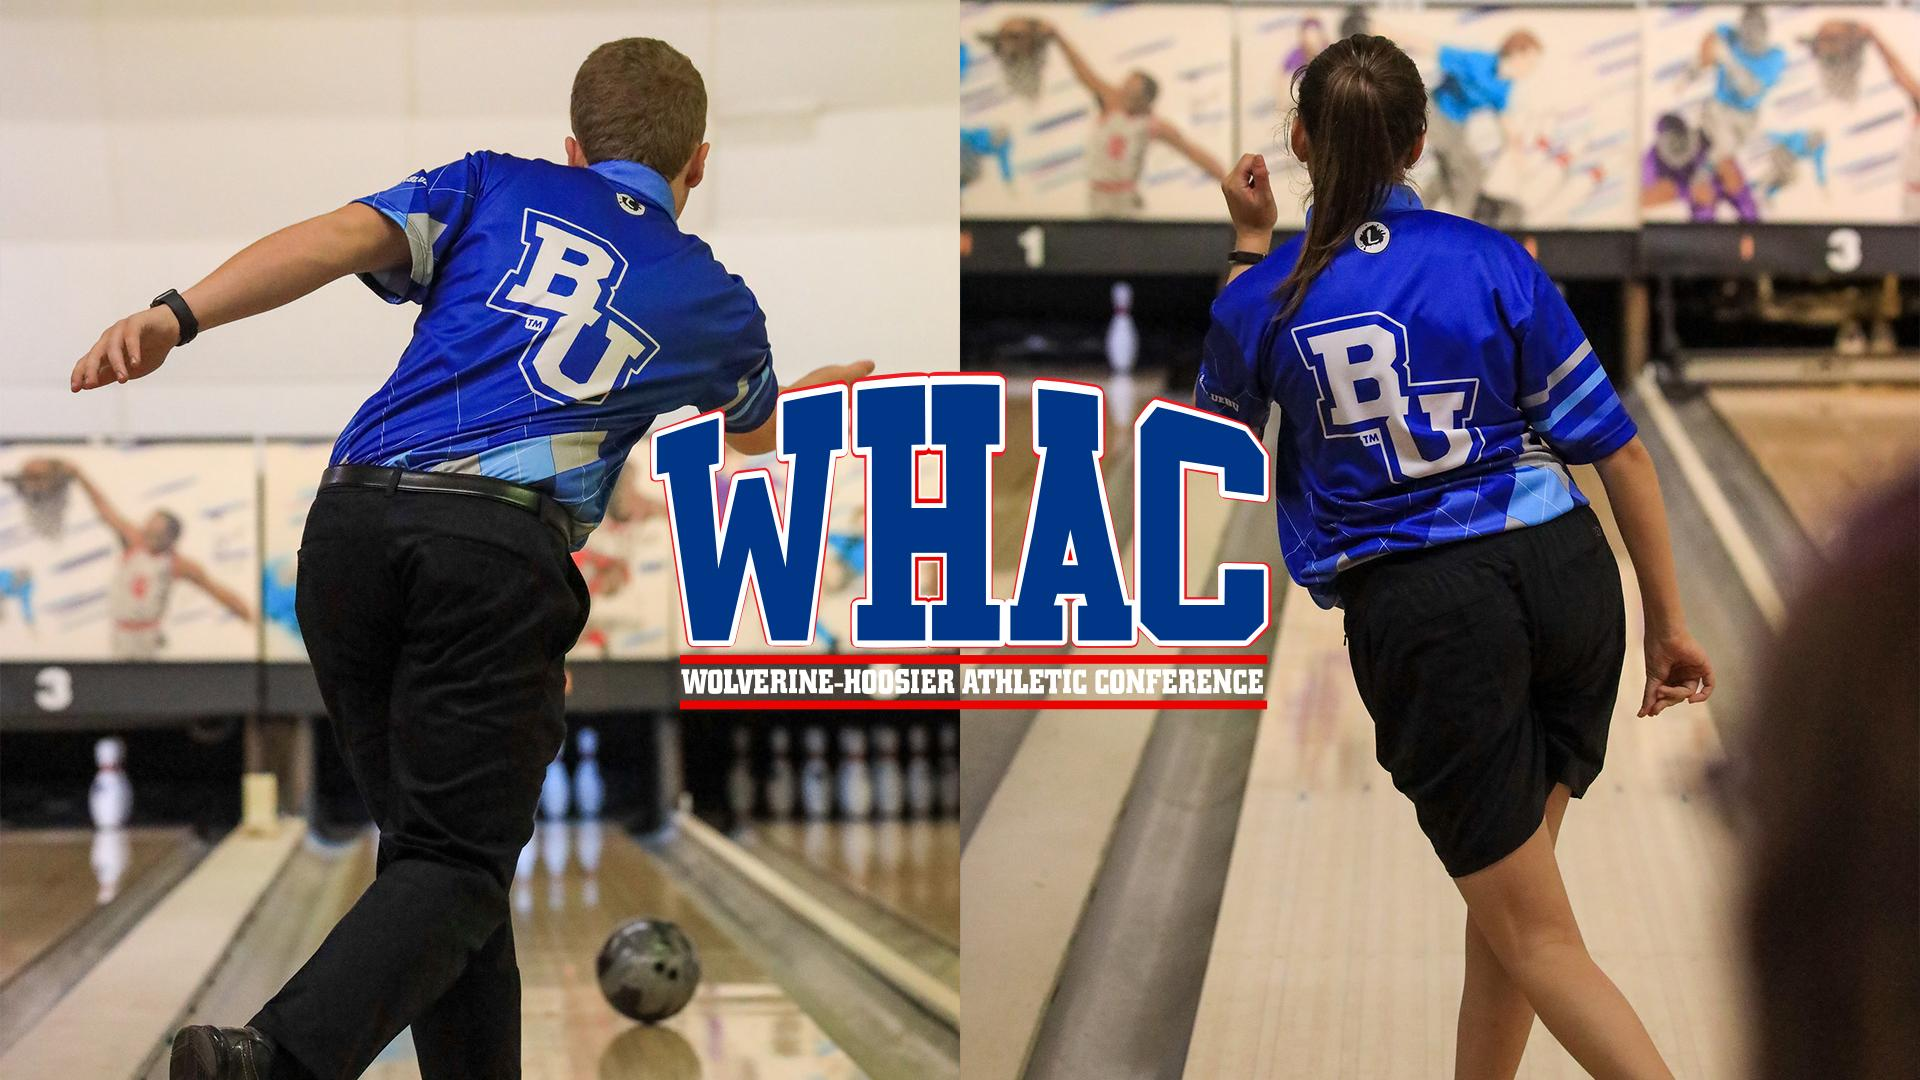 Men's and Women's Bowling Joins Wolverine-Hoosier Athletic Conference    Bethel University Athletics